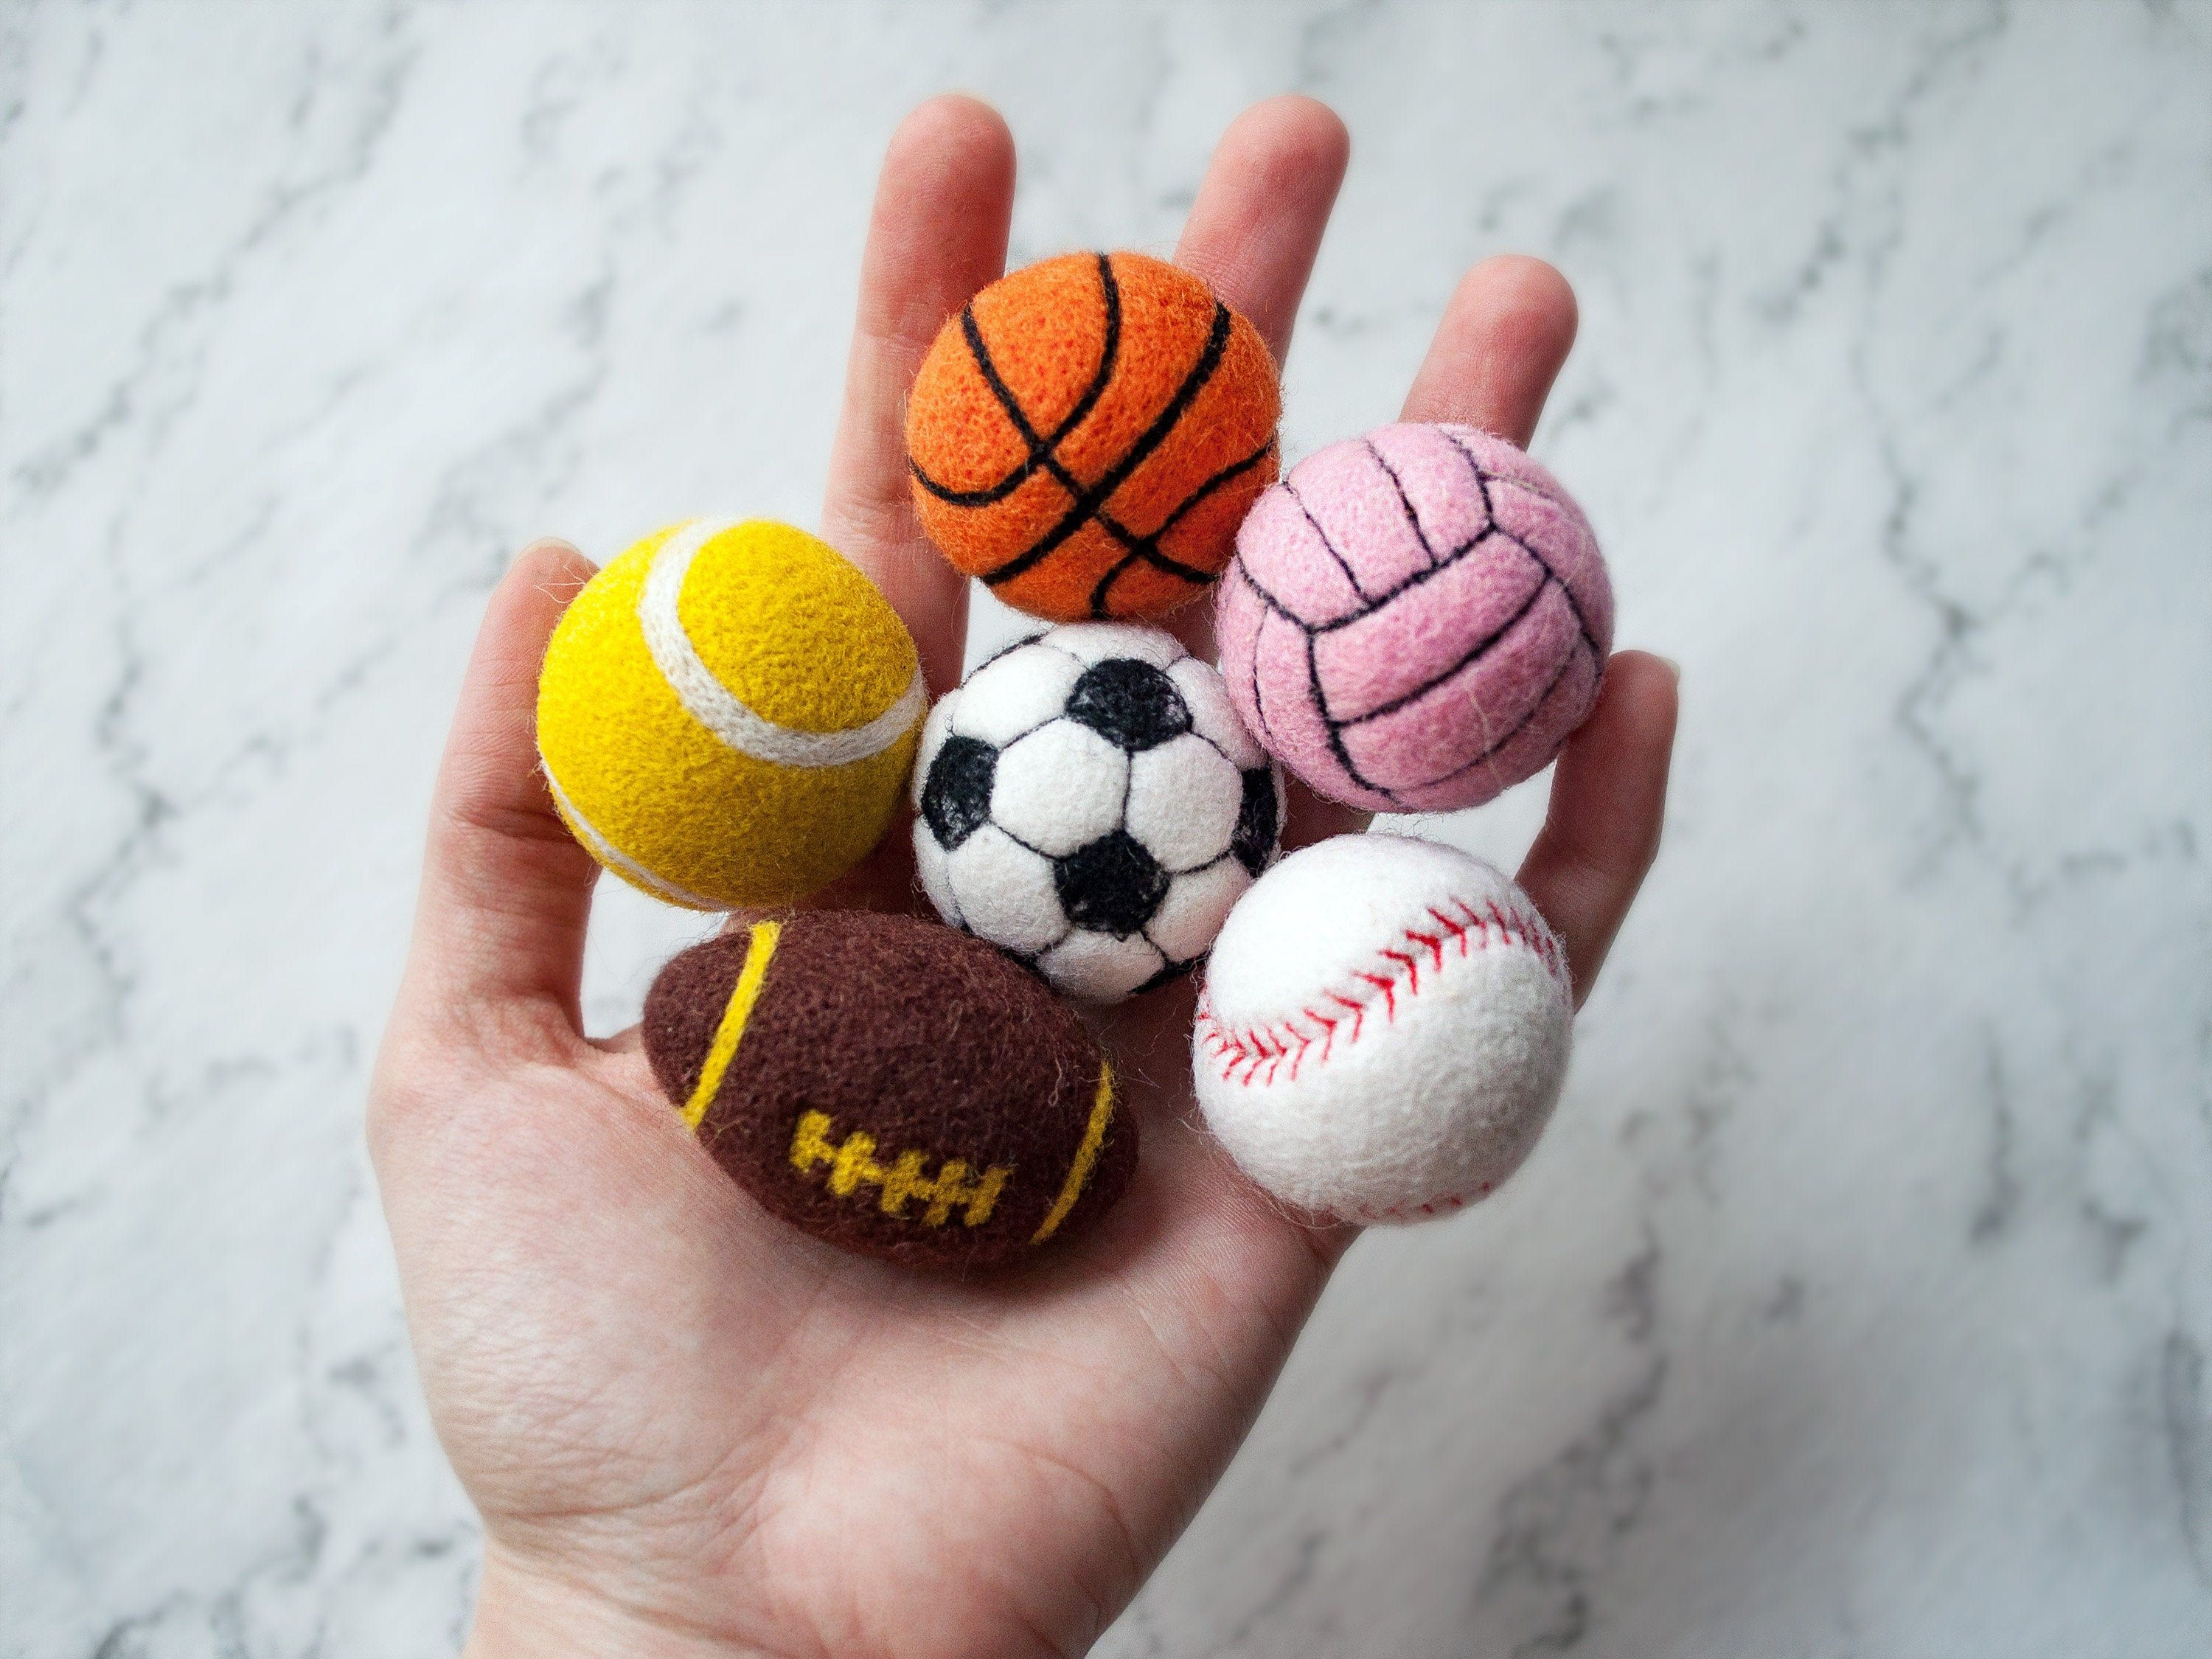 Sports Balls Cat Toys 1 7 Inch Felted Wool Balls Football Volleyball Rugby Basketball Tennis Baseball Billiard Fan Lucky 8 Valyanie Sport